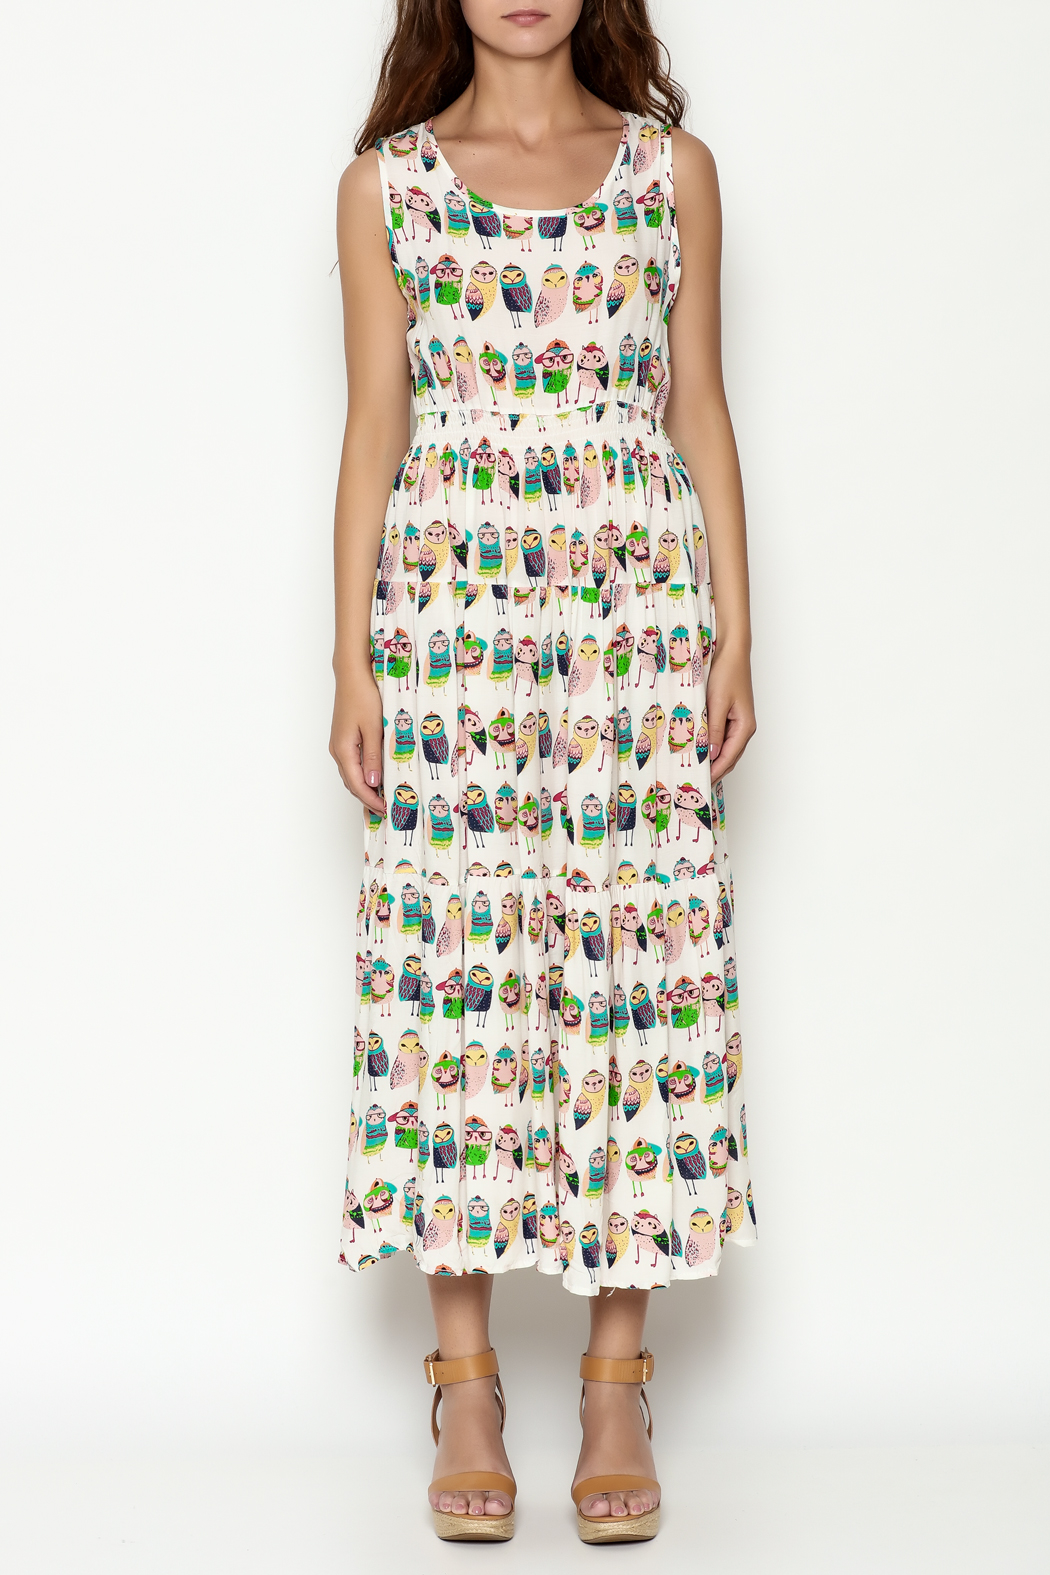 THINK CLOSET Colorful Owl Dress - Front Full Image